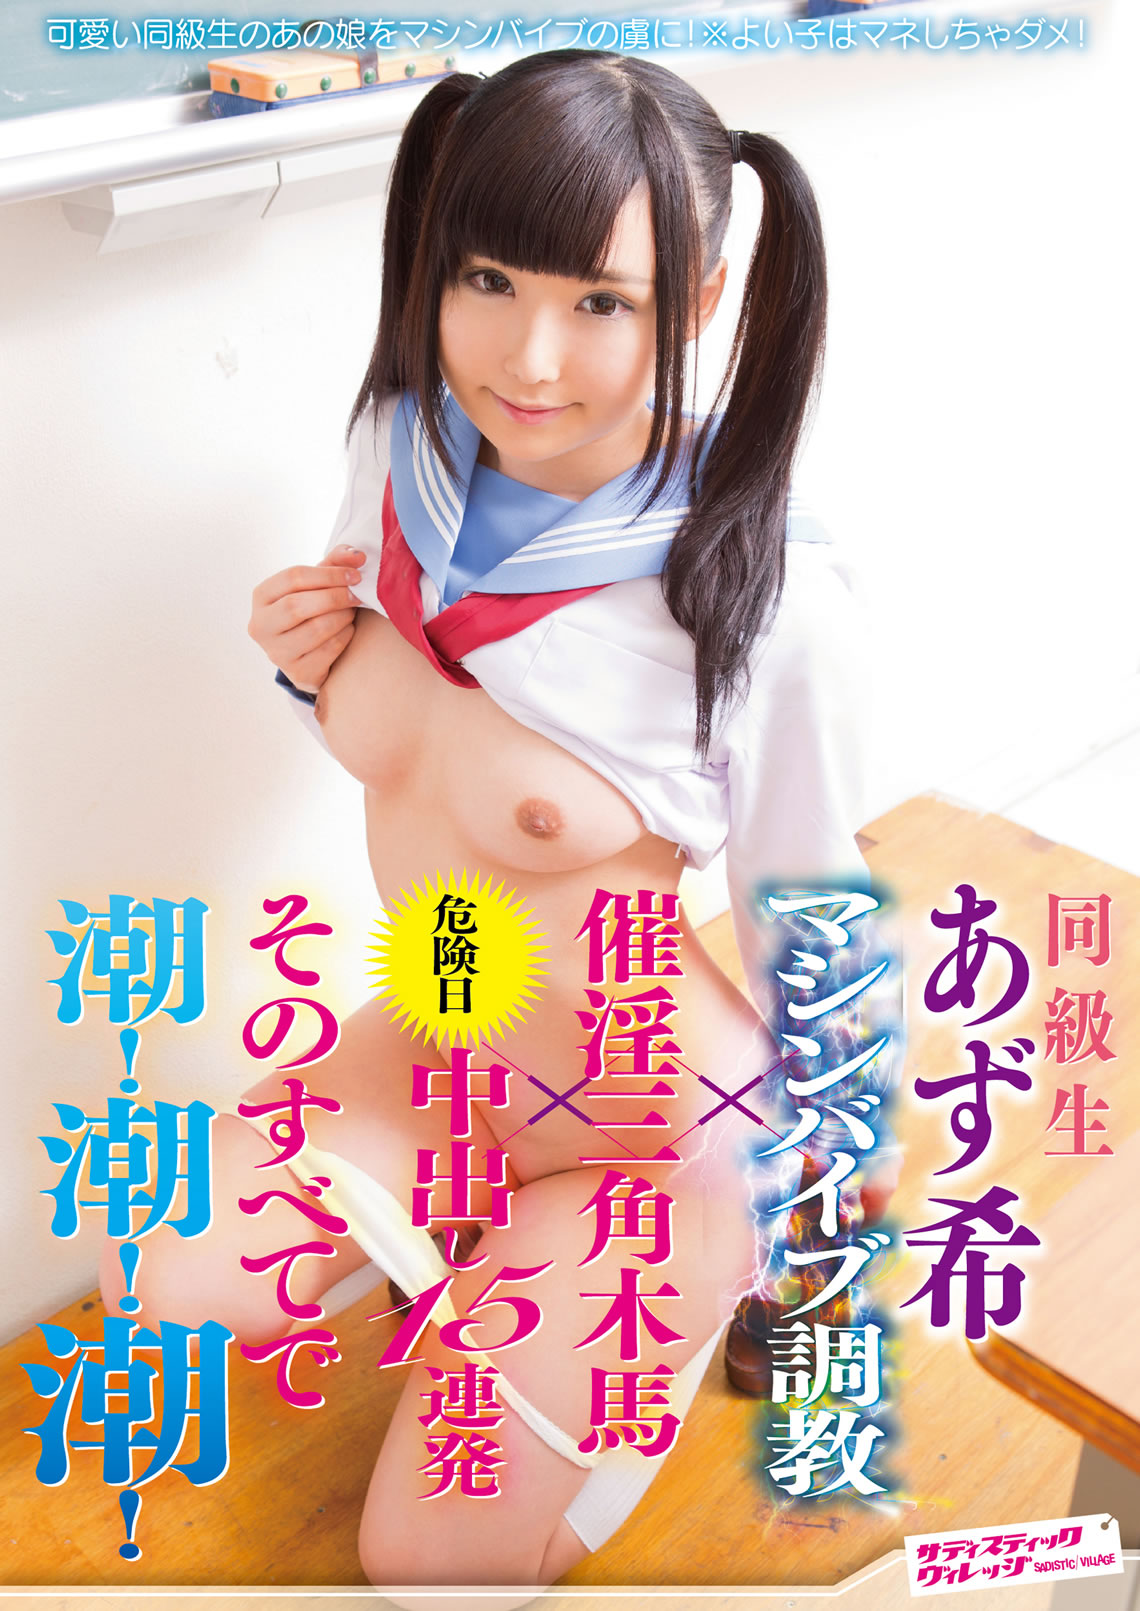 A Classmate, Azuki, Machine Vibrator Sexual Training x Aphrodisiac Wooden Triangle Horse Ovulation Day Cream Pie 15 Continuously, Squirting All Of Them!